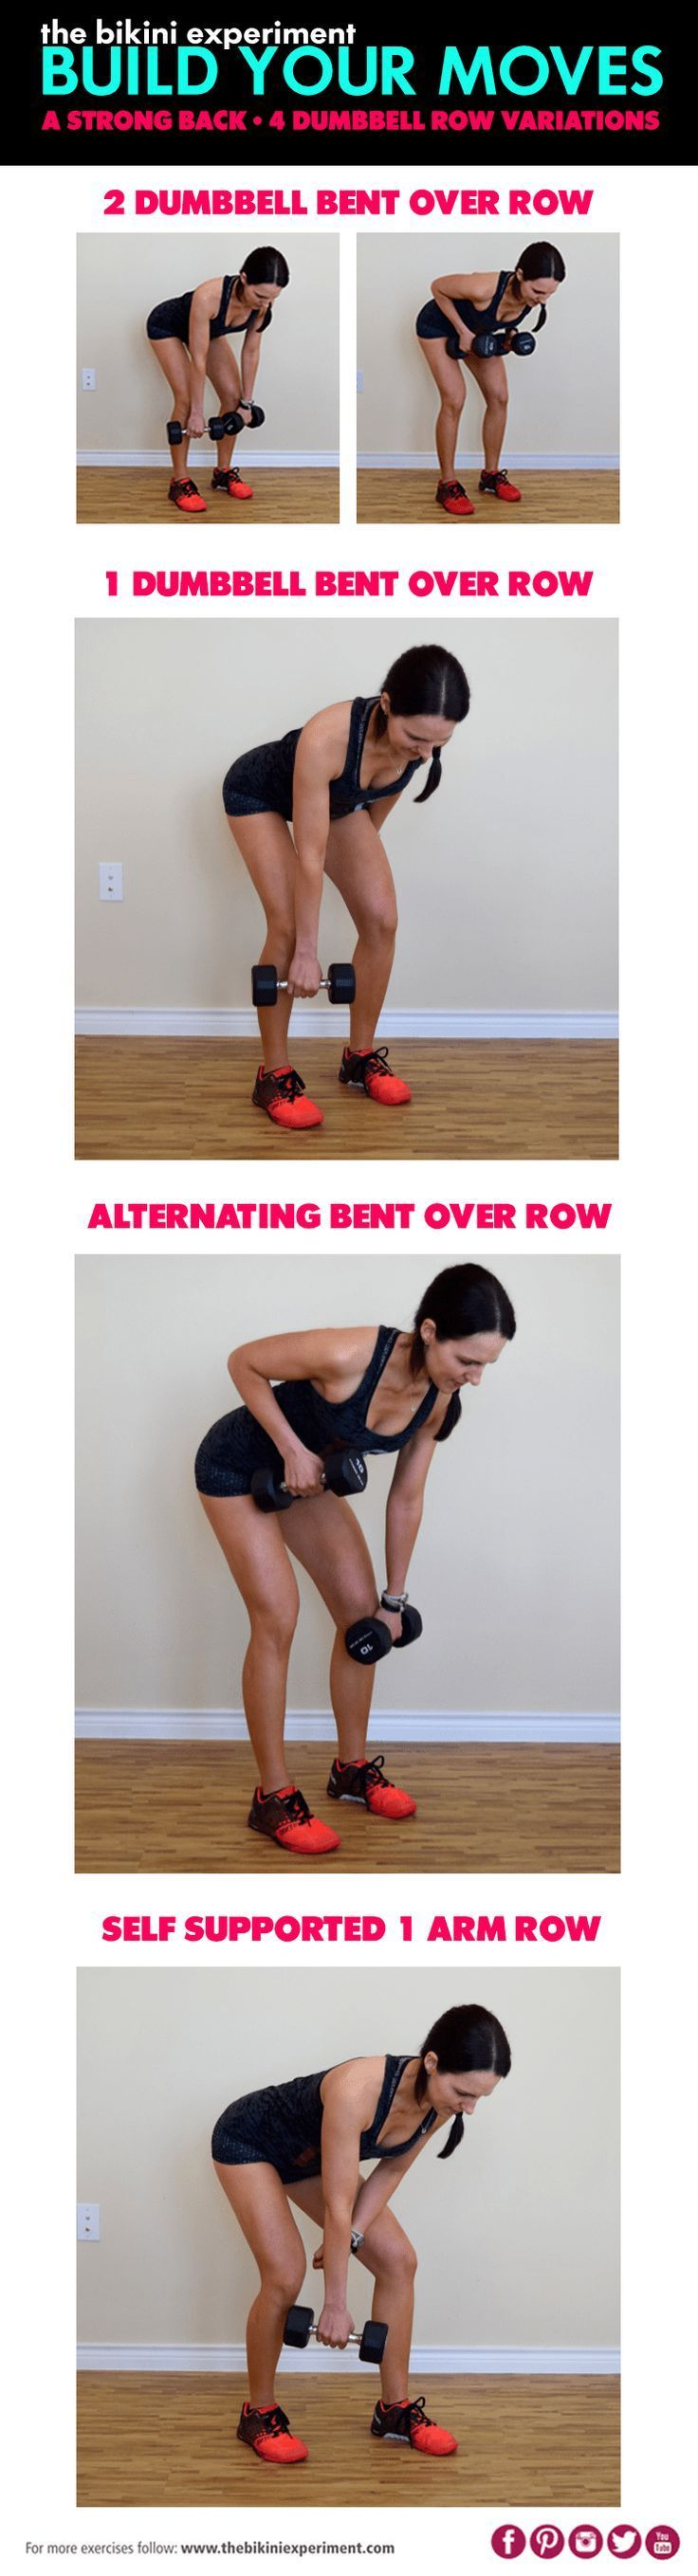 A dumbbell row is an awesome exercise to add to your workout routine. Learn the basic! Then add simple ways to vary the movement and maximize its benefits.|The Bikini Experiment